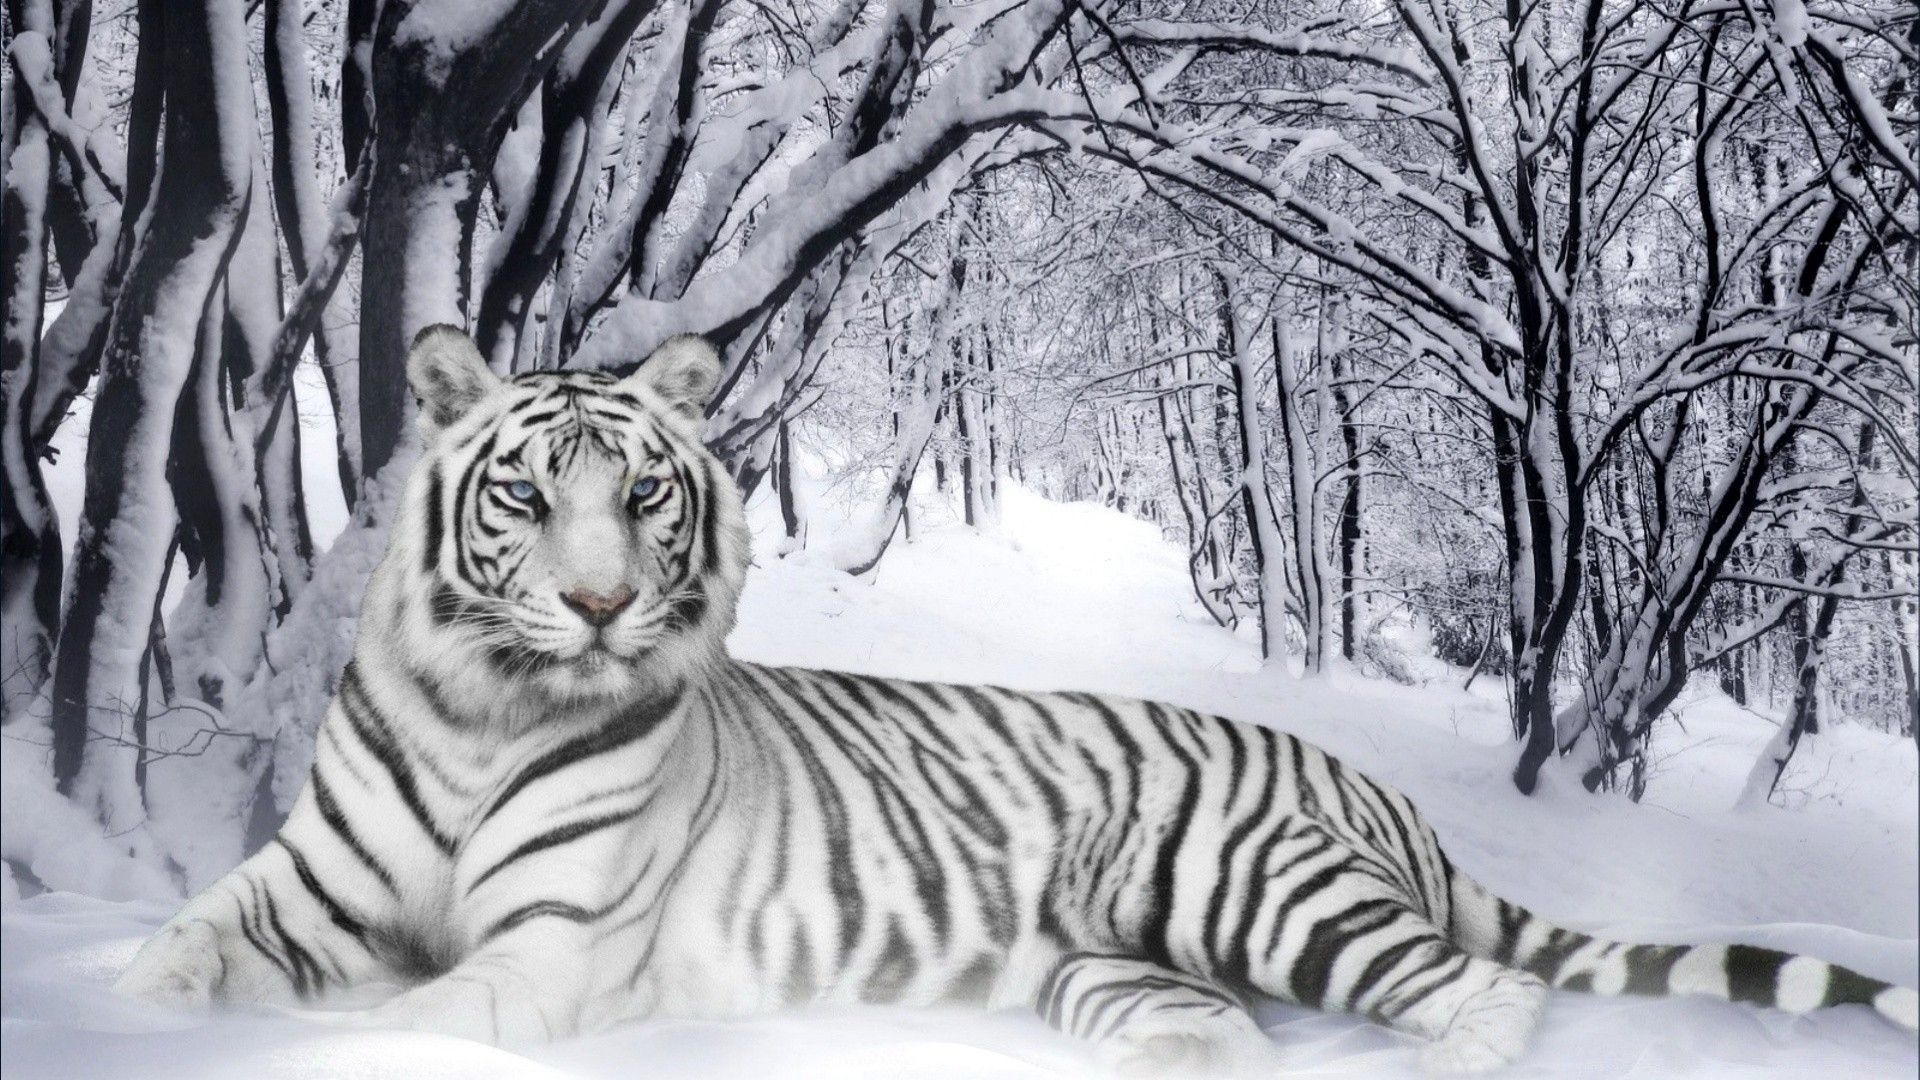 White Tiger on the snow, Free Wallpaper